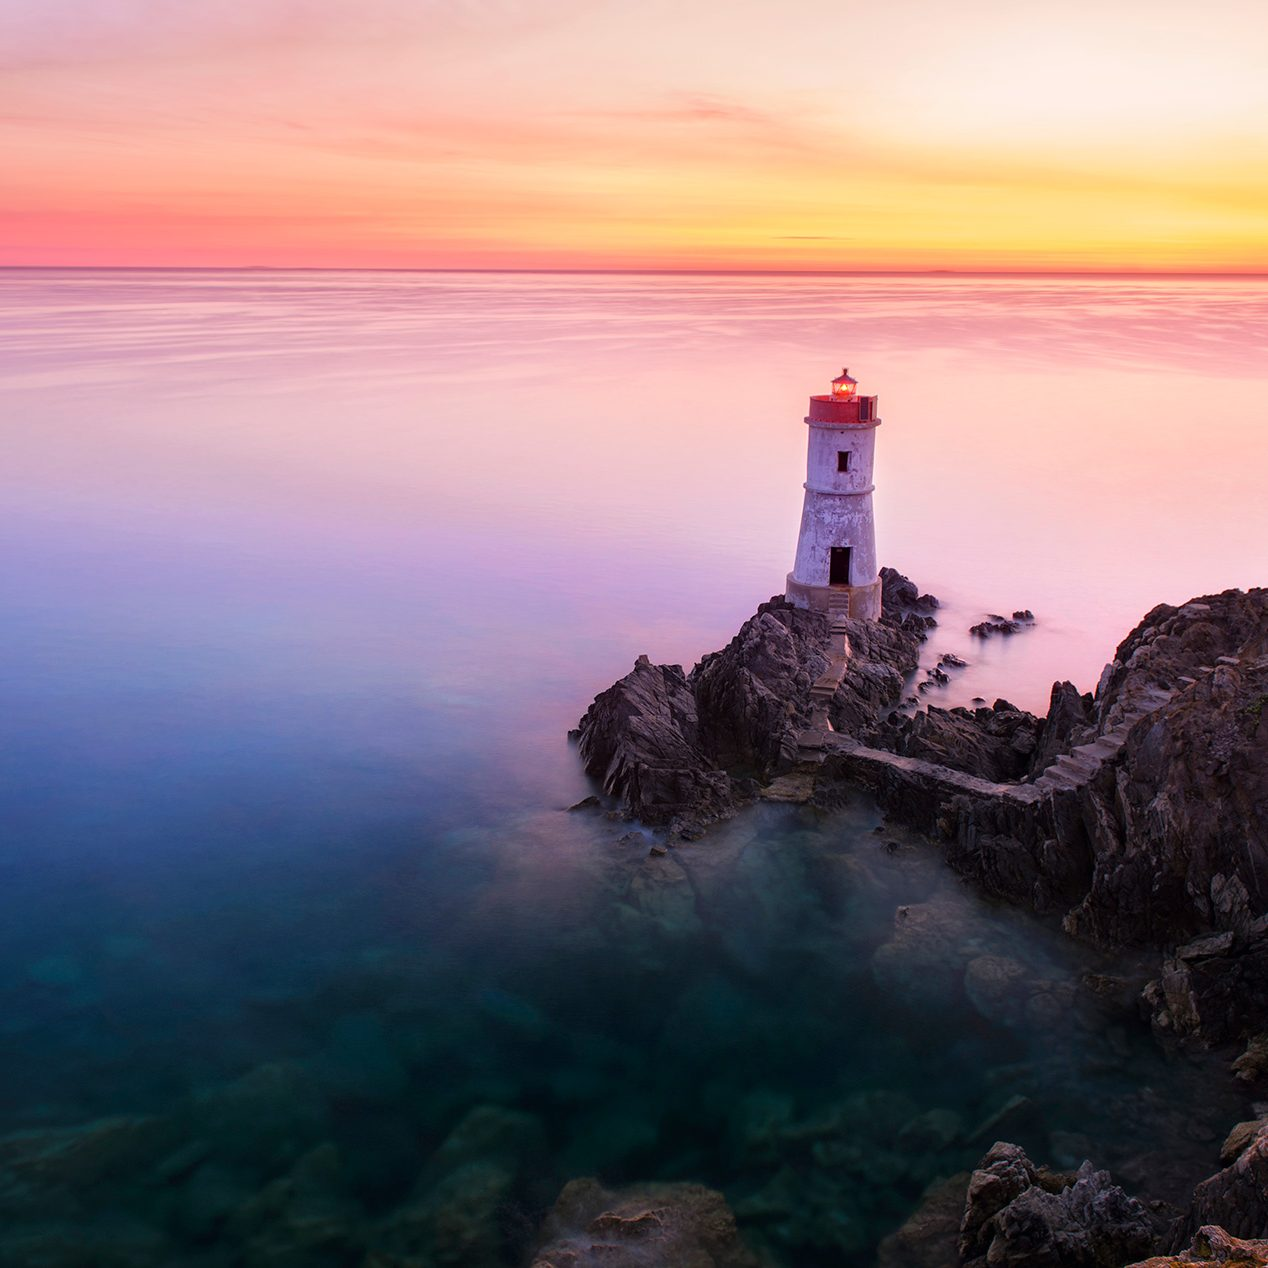 Phare Lighthouse, Capo Ferro, italie italy photographie photography trip travel voyage nikon d810 europe nature paysage landscape summer été long exposure, pose longue, lee filters